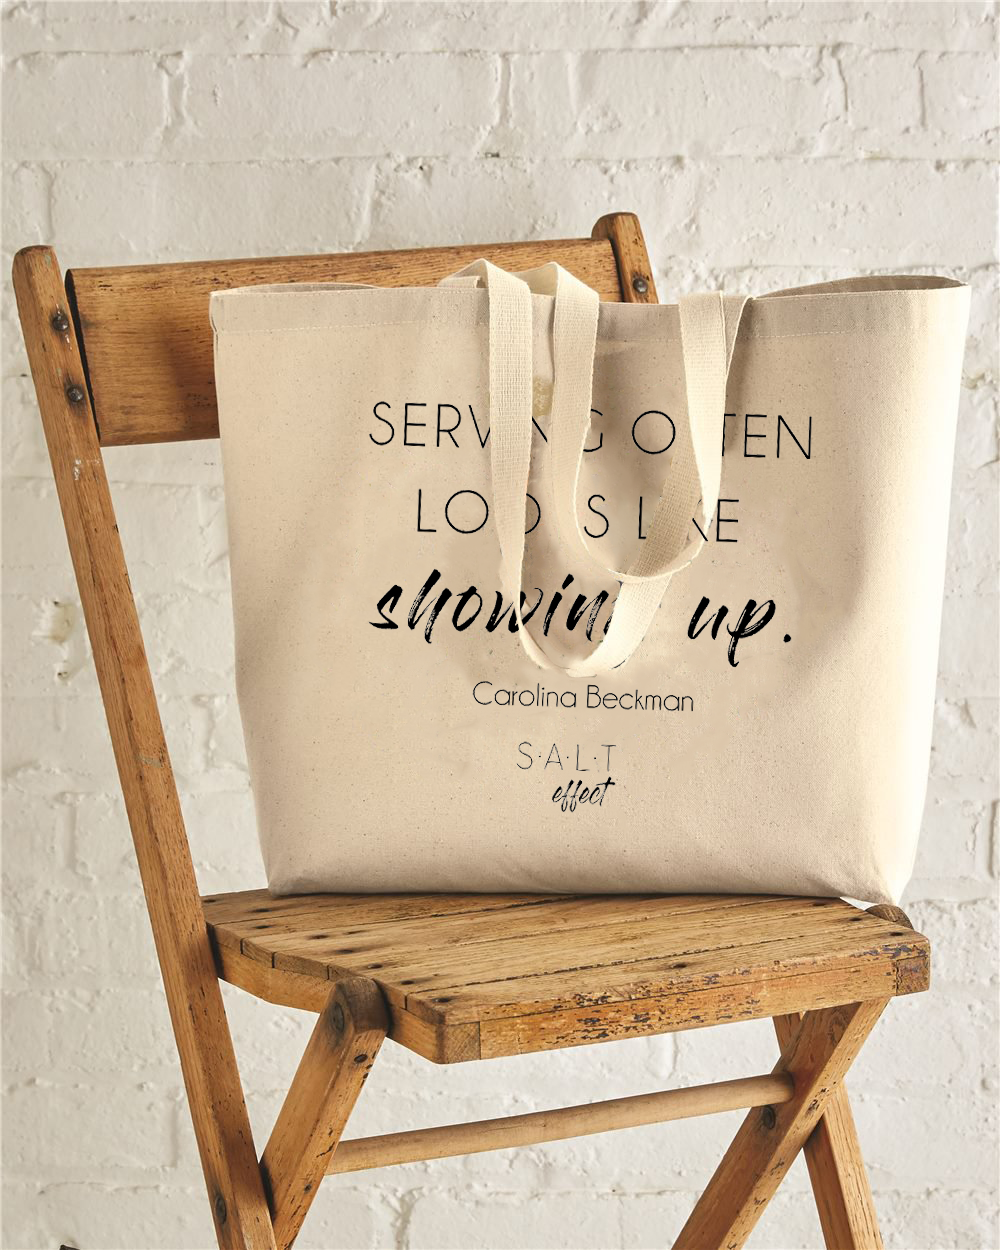 Showing Up Jumbo Cotton Canvas Tote Bag